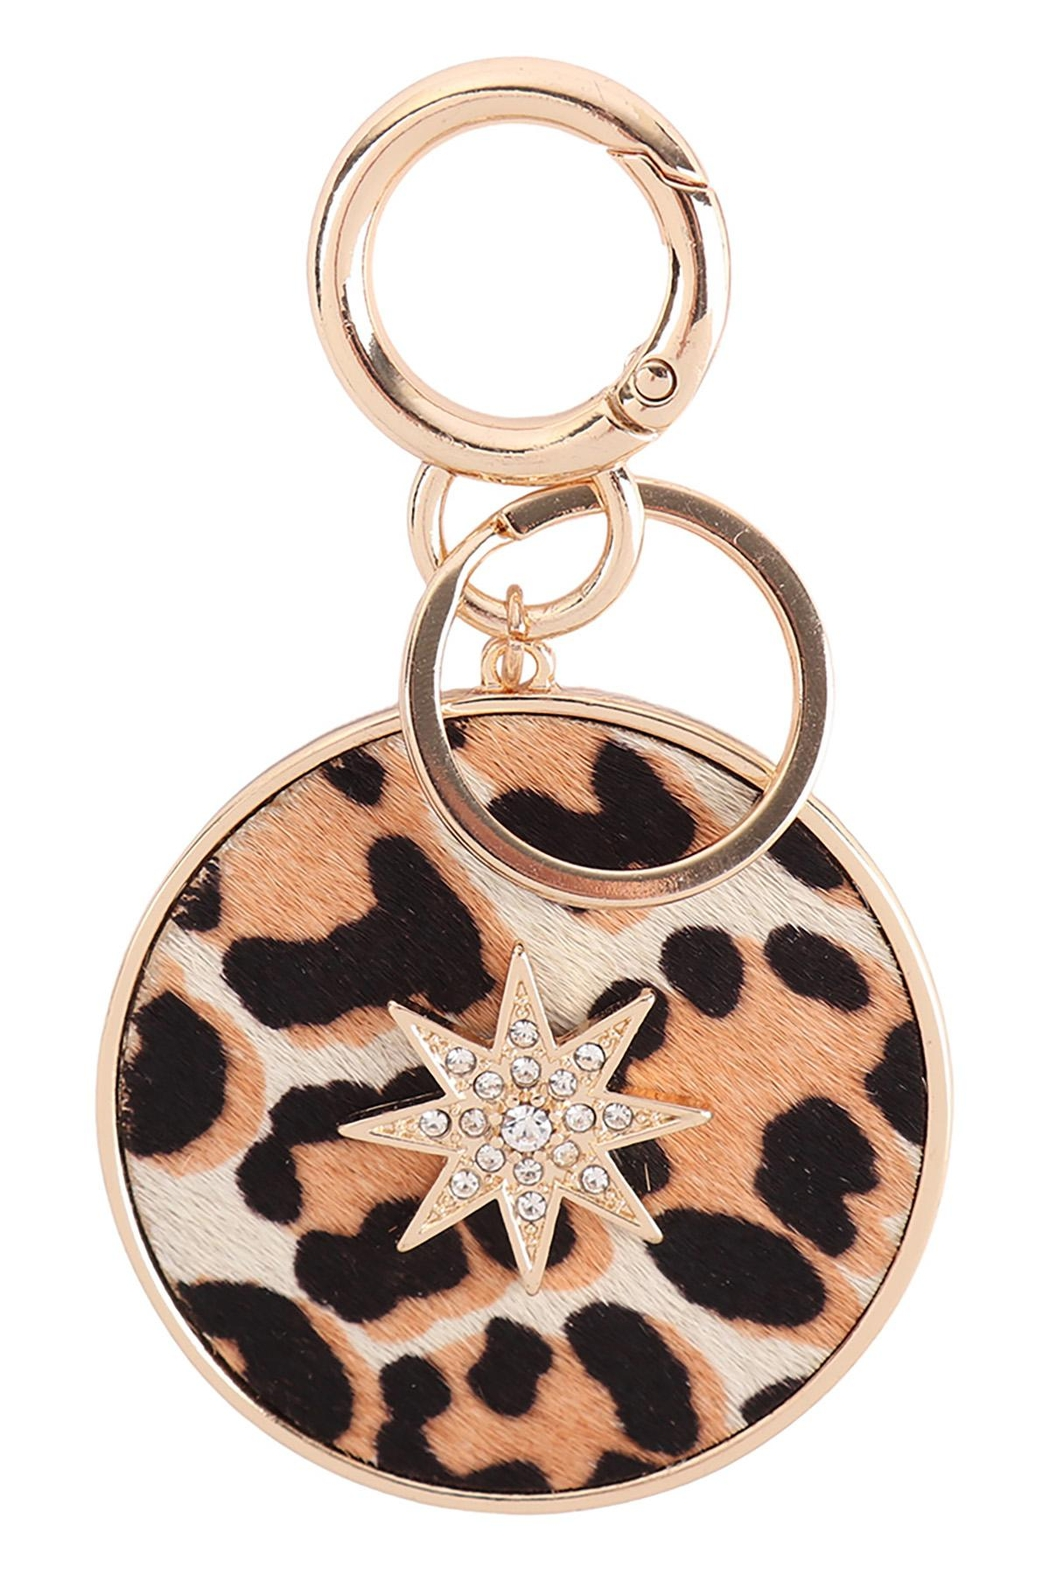 Riah Fashion Paved-Starburst-With-Real-Calf-Hair-Leather-Keychain - Front Cropped Image